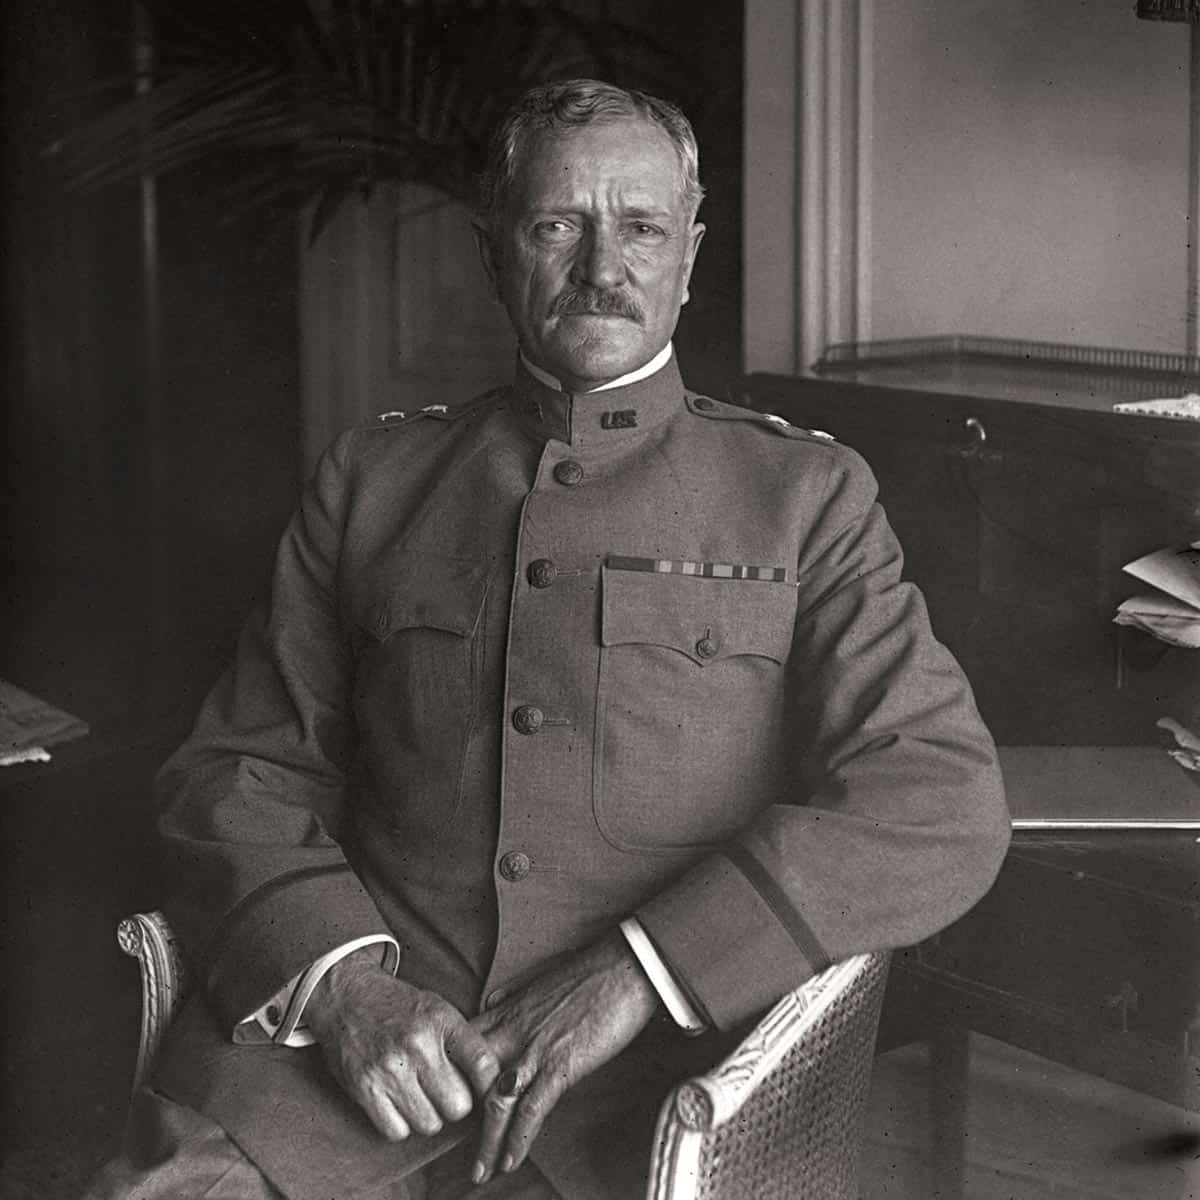 circa 1917: US General John Pershing (1860 - 1948) nick-named Black Jack, Commander-in-Chief of the US Expeditionary Force in Europe during World War I. (Photo by Topical Press Agency/Getty Images)